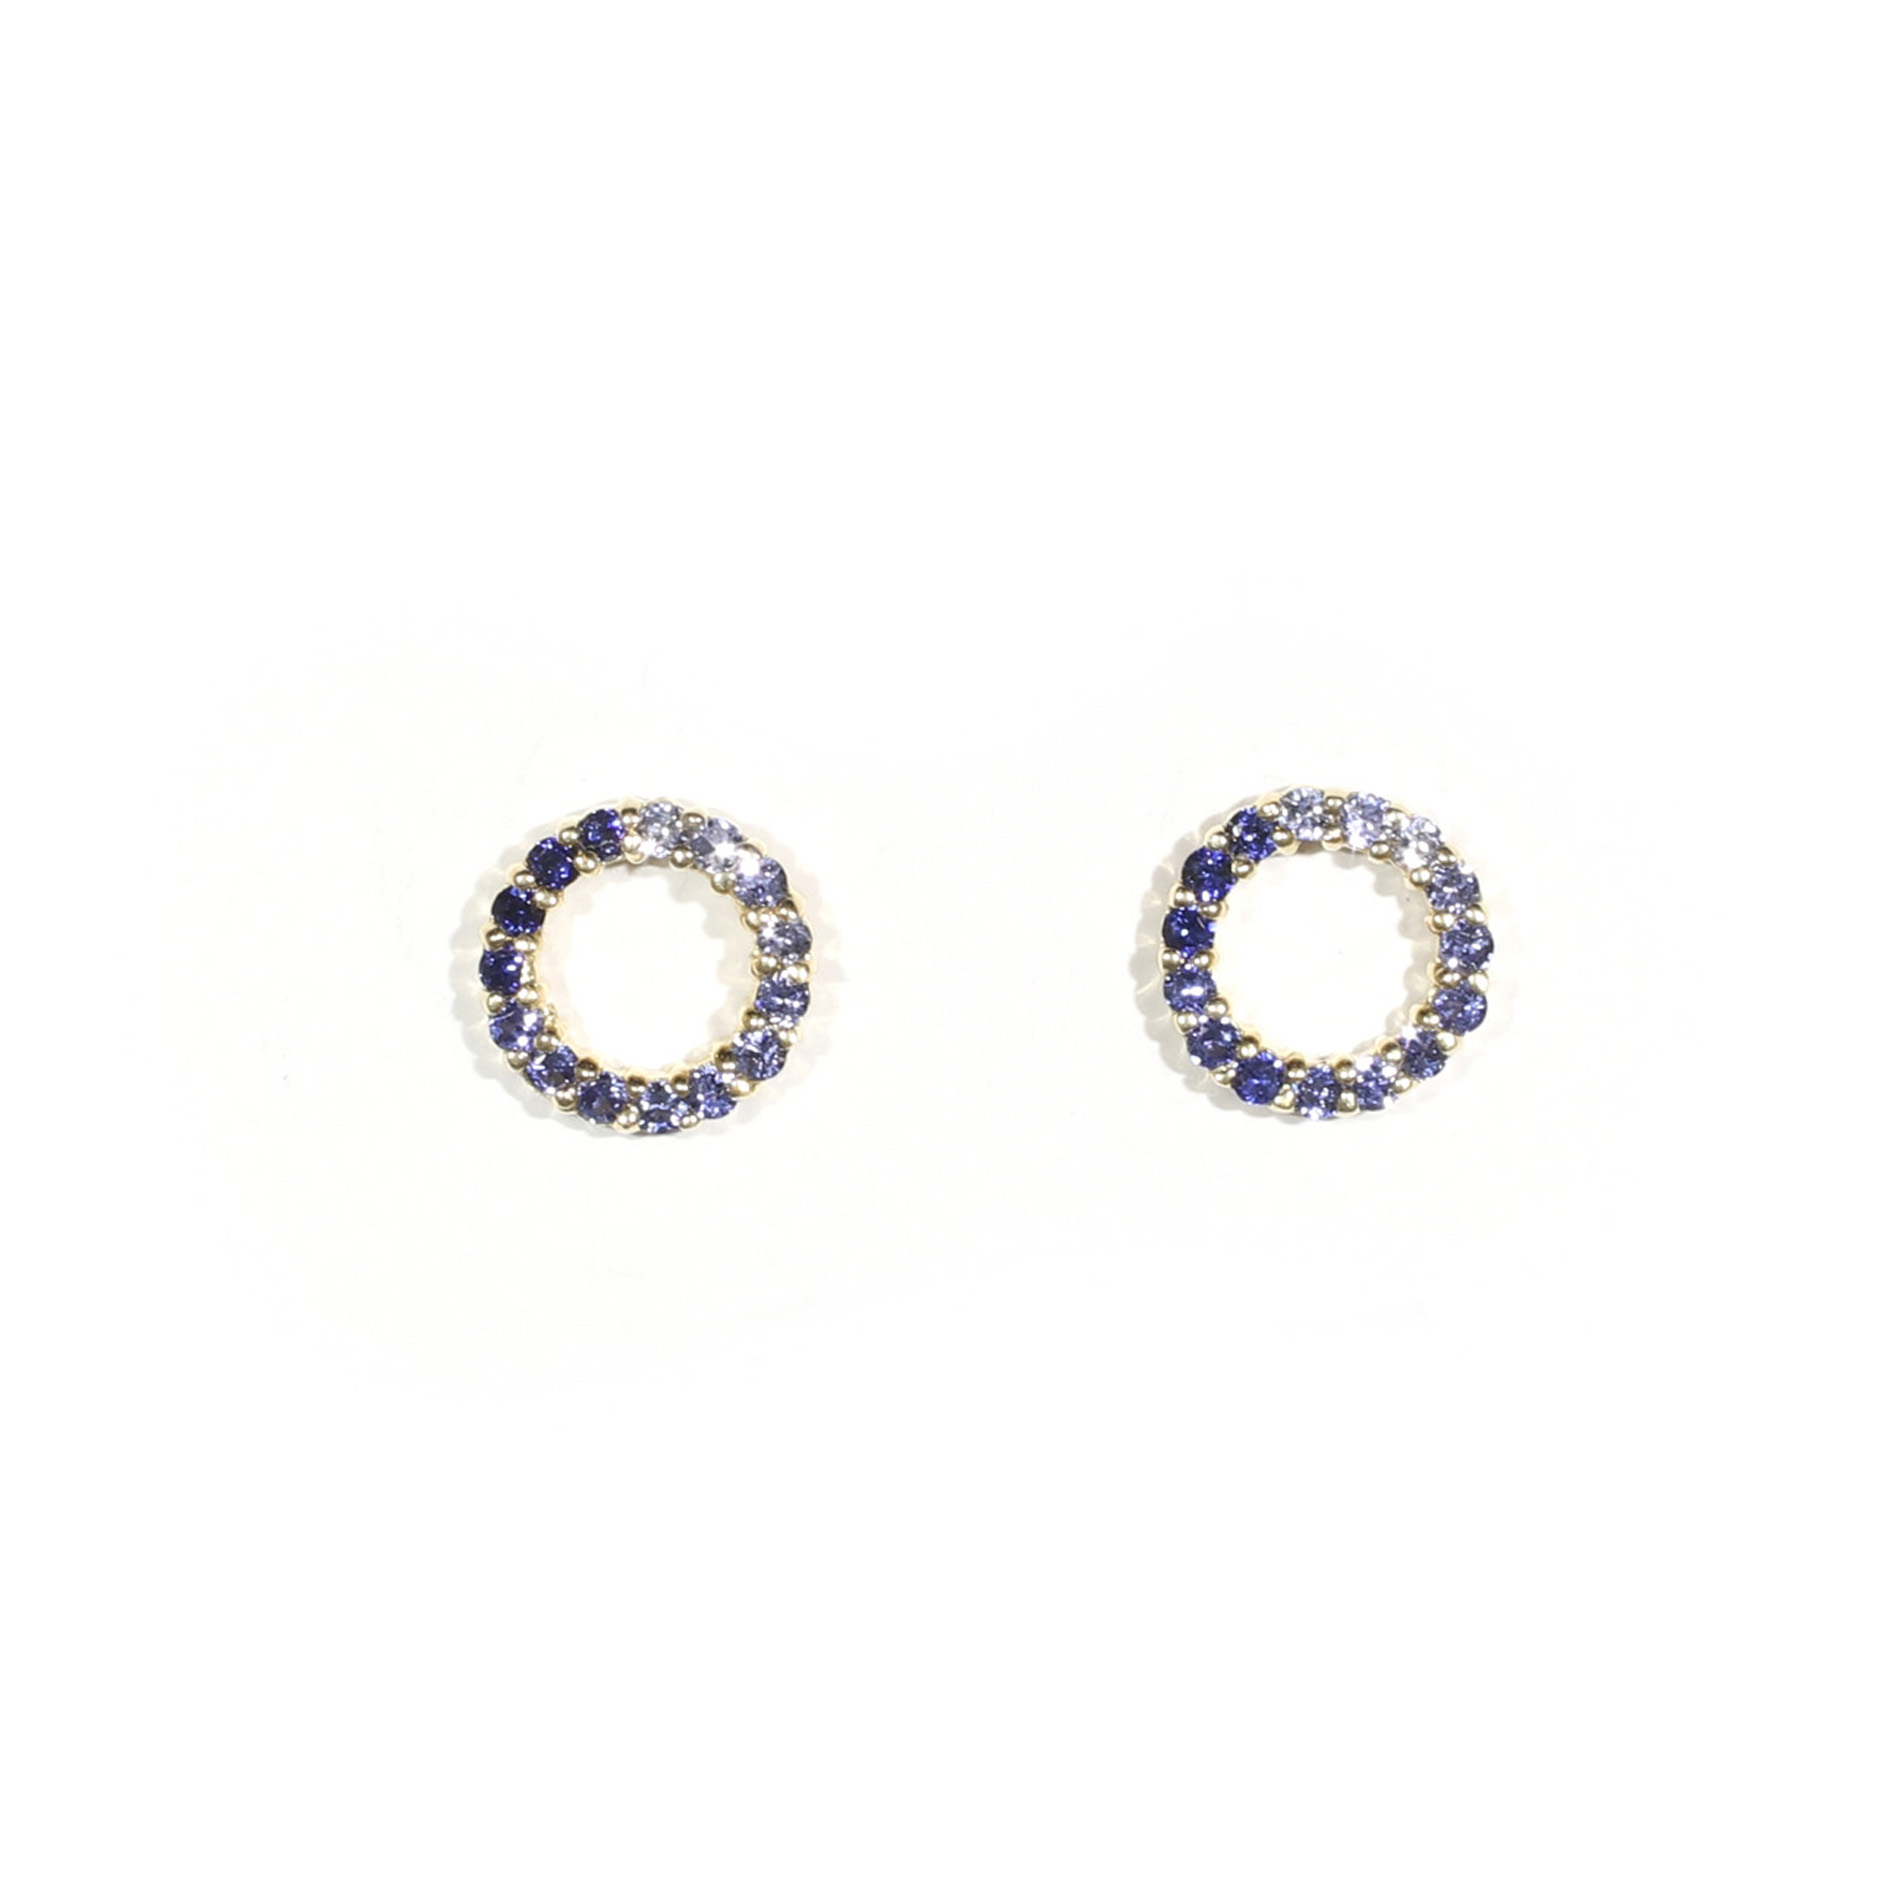 Graduated Sapphire Circle Earrings